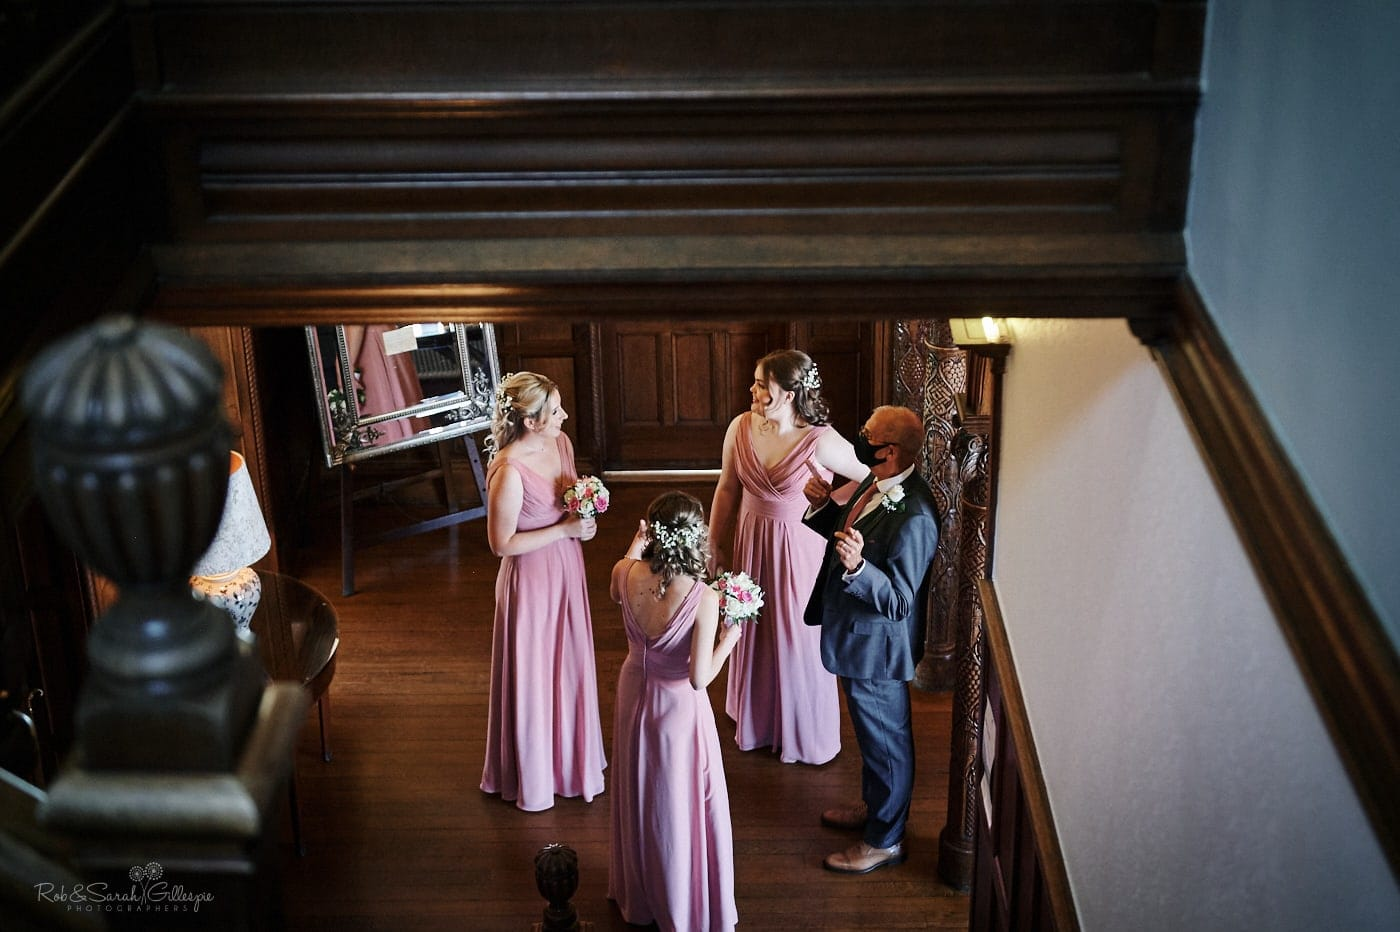 Bridesmaids chat while waiting for bride